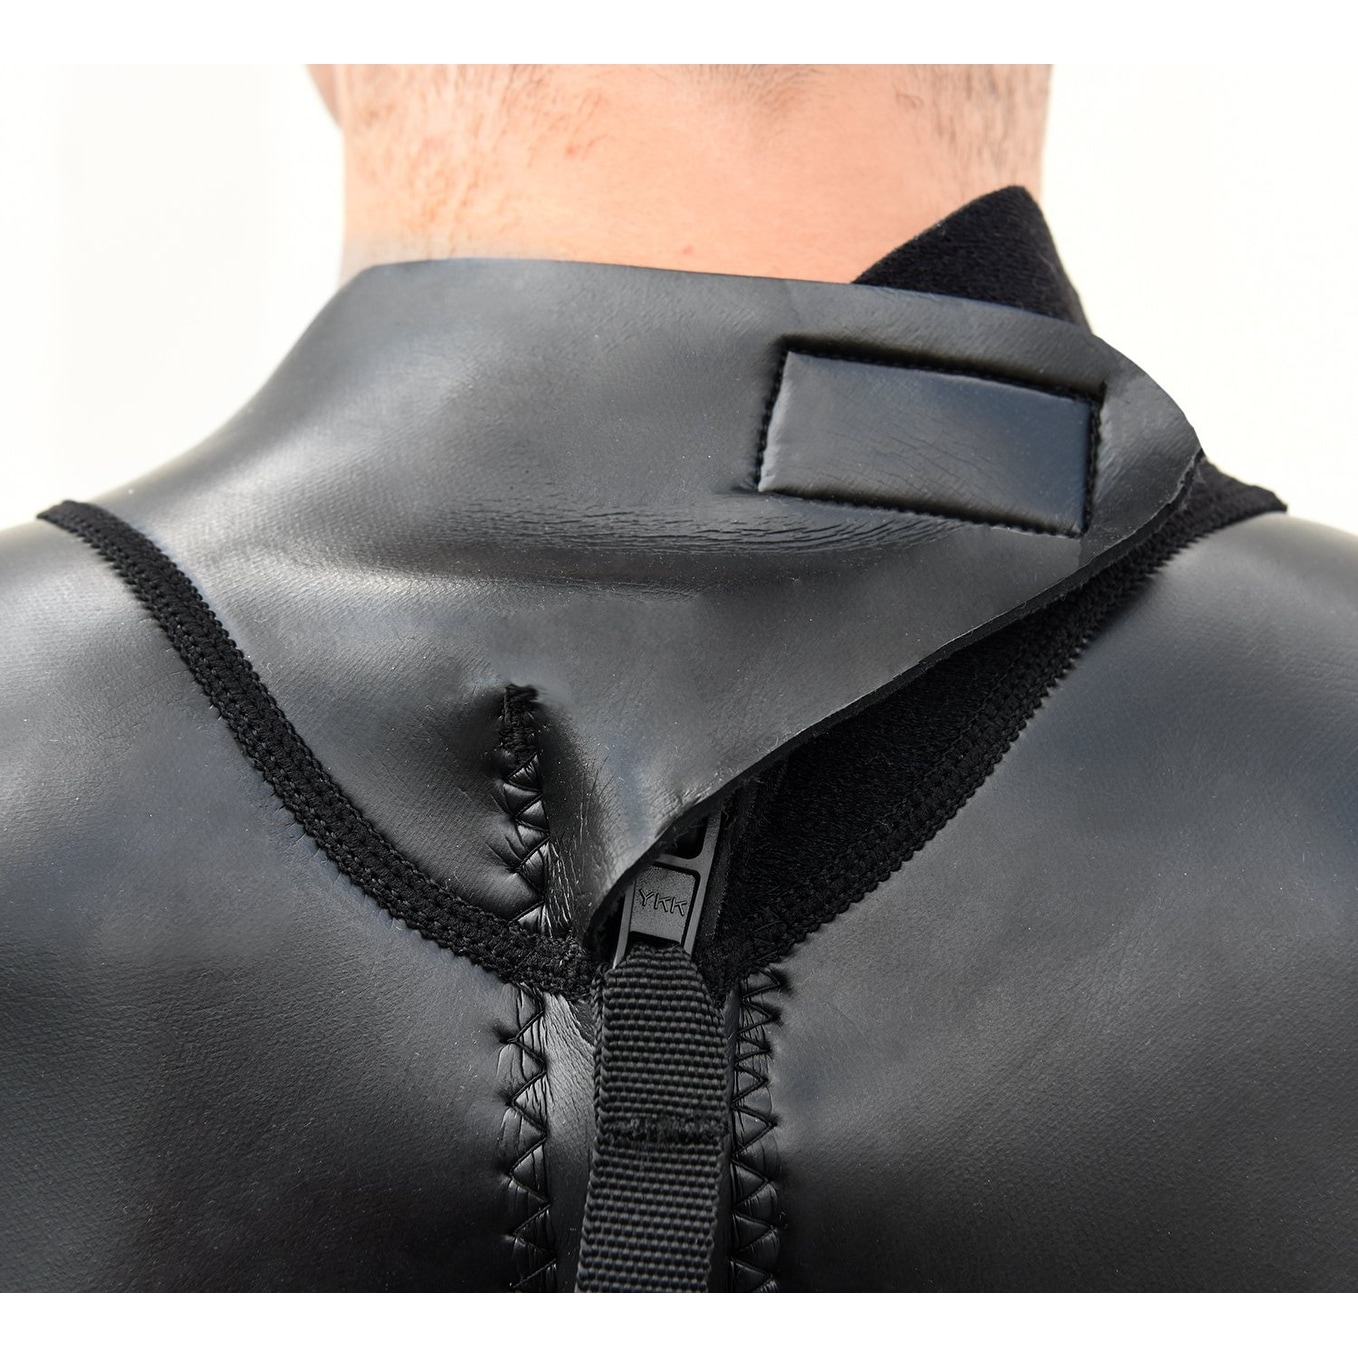 27e36cad94 vation 3mm Wind-Resistant Short Wetsuit for Men - Crafted of Premium  Flexible Neoprene with Flatlock Construction